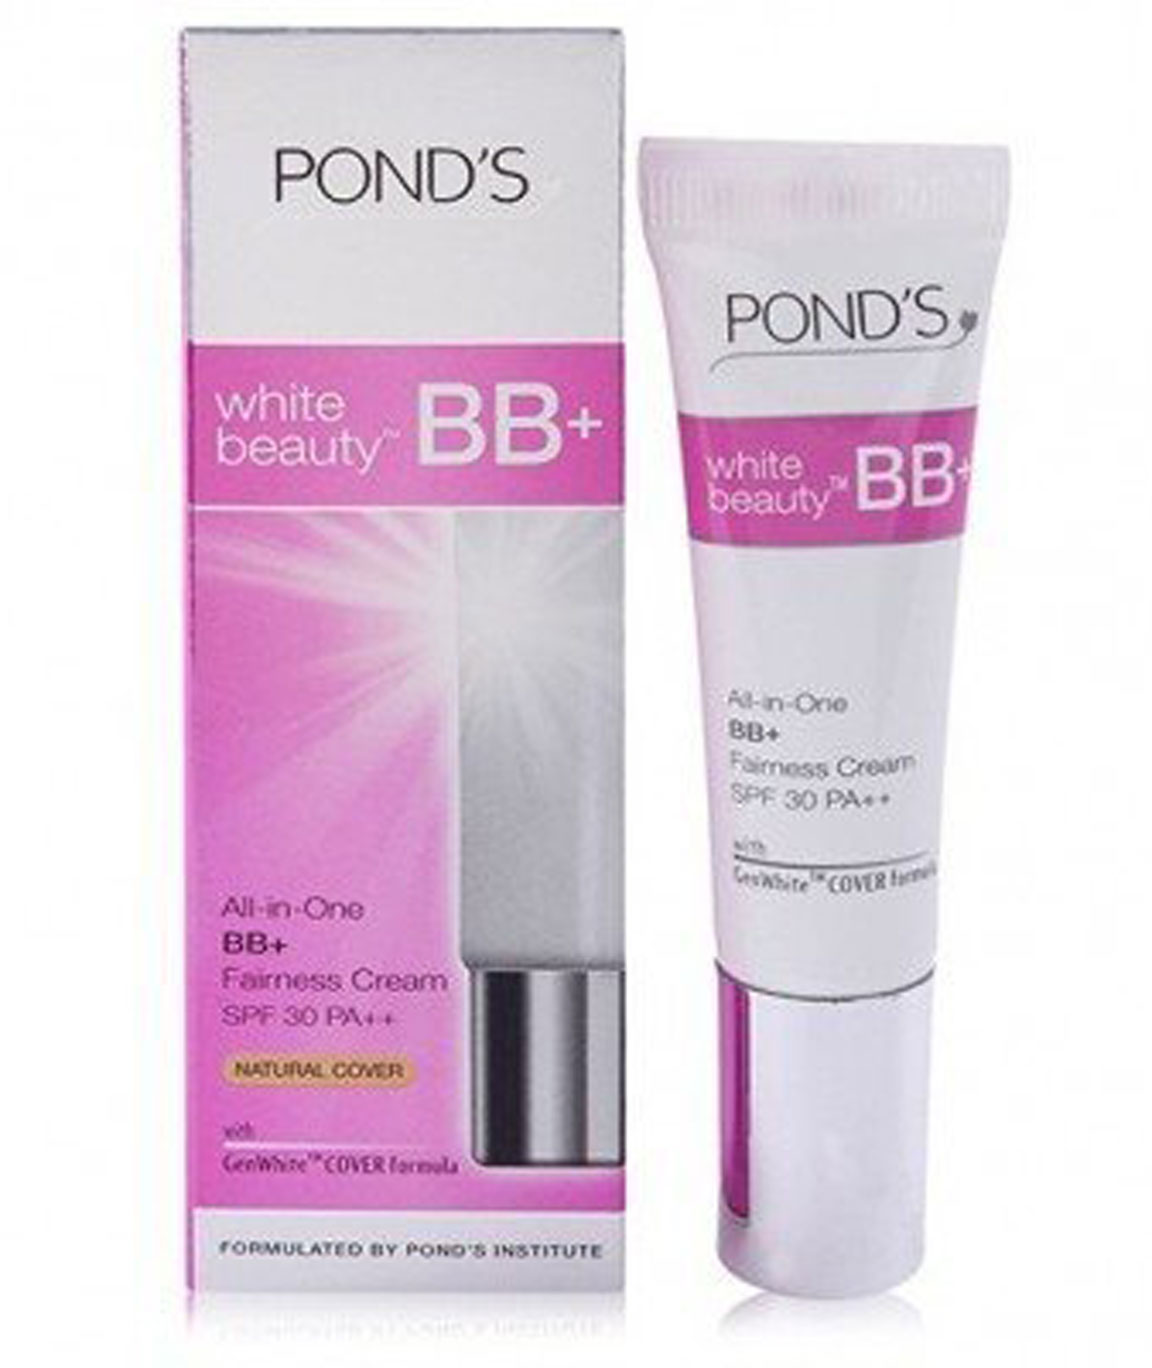 Ponds White Beauty All In One BB+ Fairness Cream Spf 30 Pa++ - 9Gm(Pack Of 2)